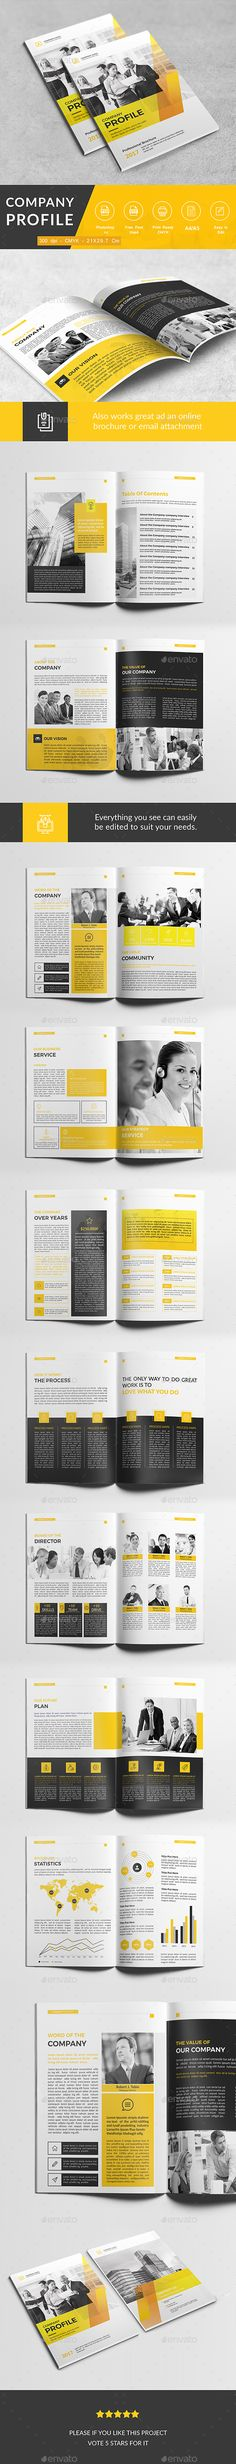 Company Profile  — PSD Template #inspiration #business #design • Download ➝ https://graphicriver.net/item/company-profile/18603748?ref=pxcr